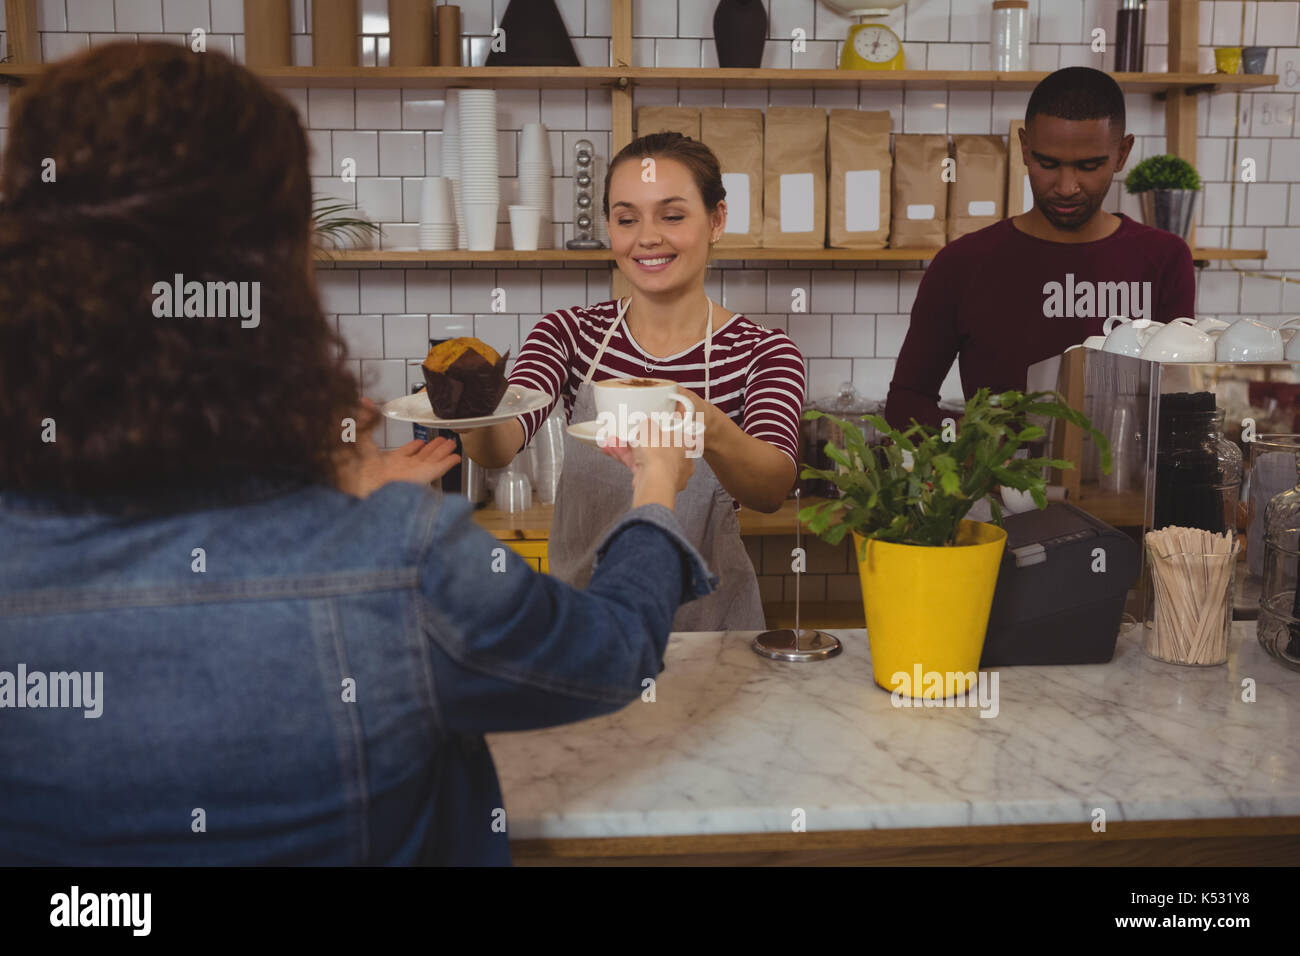 Young female owner serving coffee and muffin to customer at cafe - Stock Image